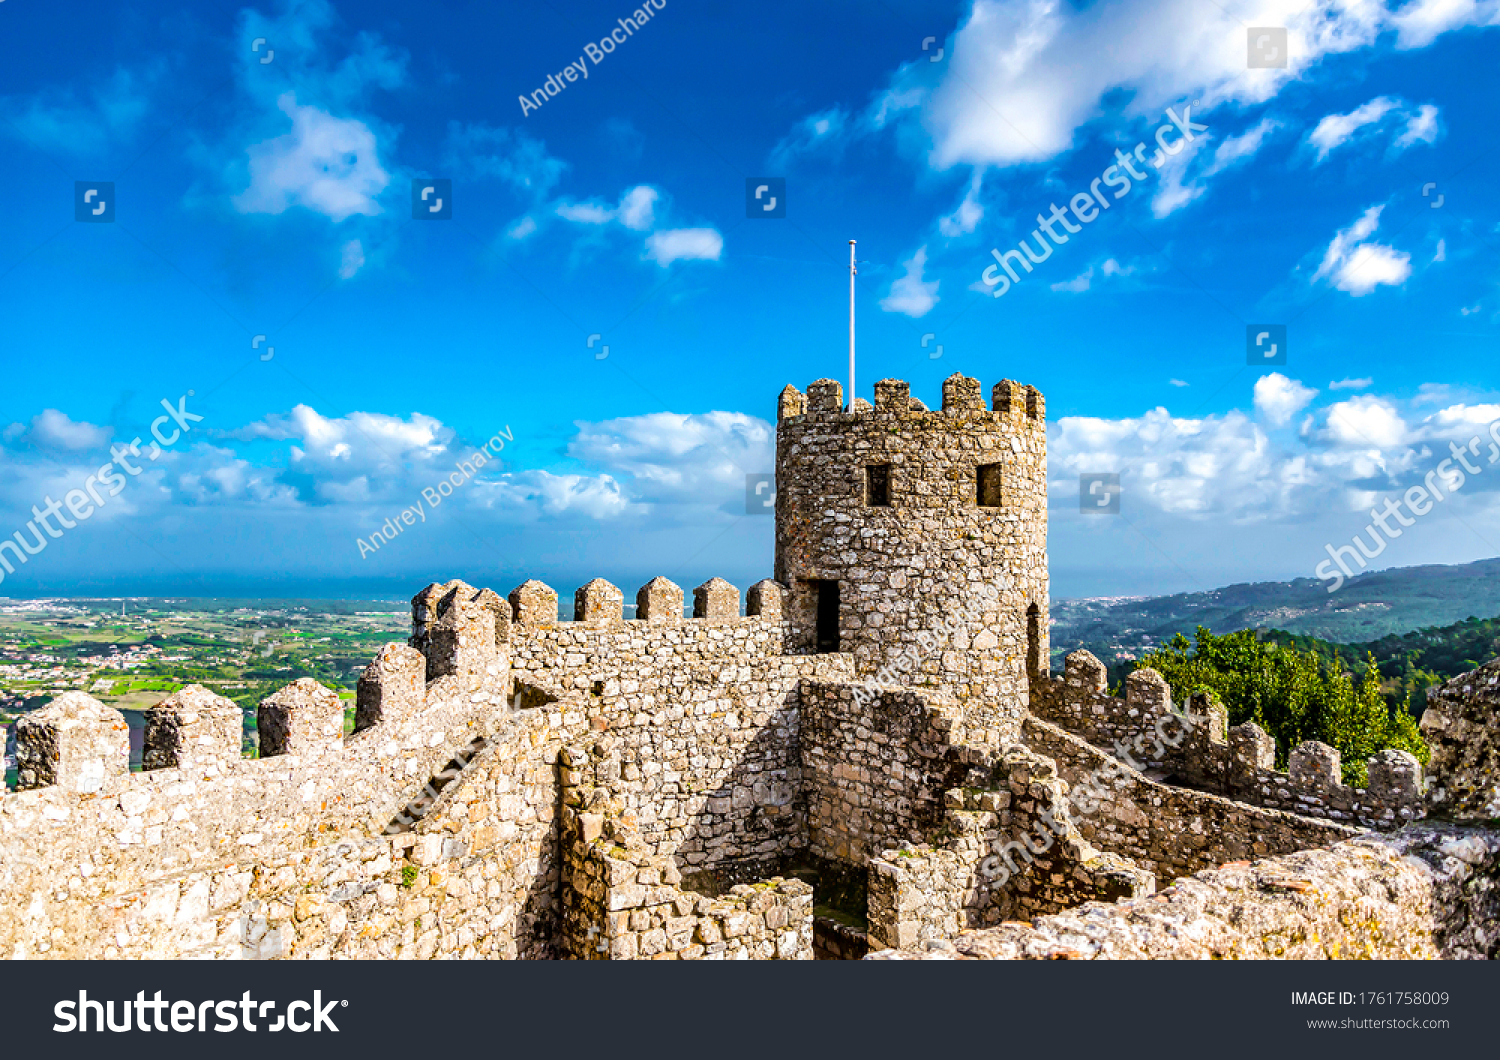 Ancient fortress ruins view. Medieval fortress ruins #1761758009